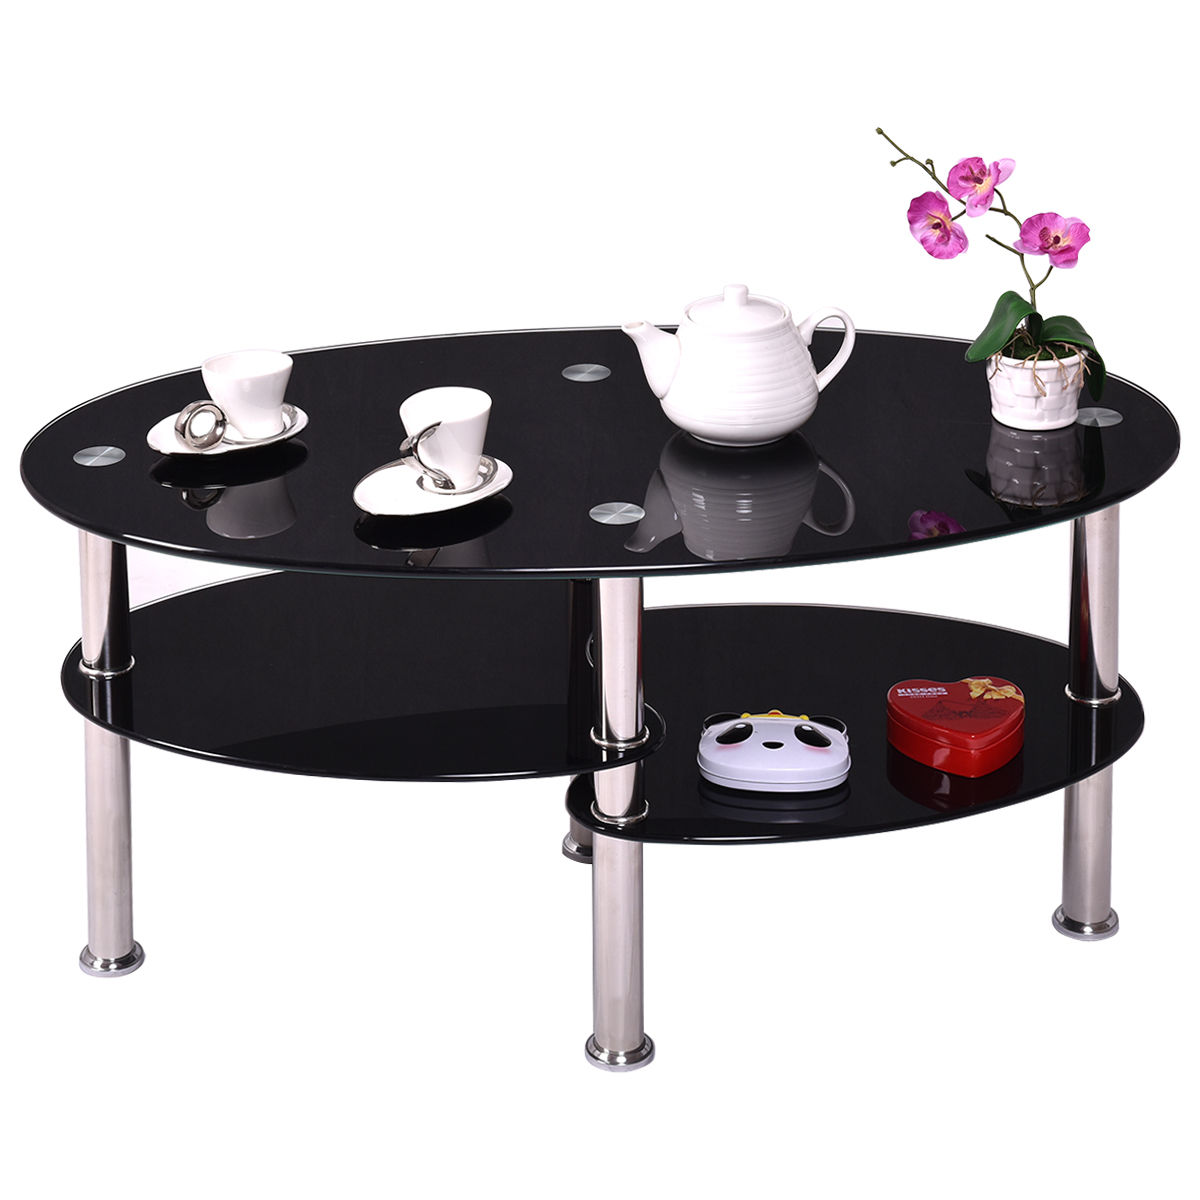 Glass Coffee Table For Sale On Ebay: Black Glass Oval Coffee Table Side Shelf Chrome Base